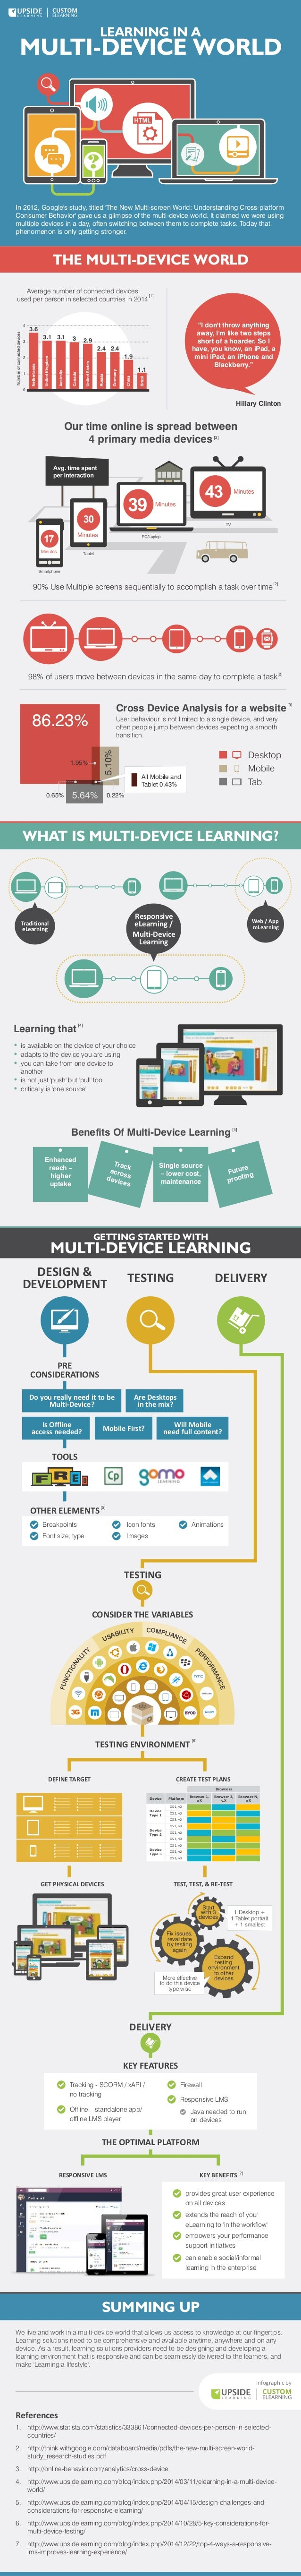 LEARNING IN A MULTI-DEVICE WORLD In 2012, Google's study, titled 'The New Multi-screen World: Understanding Cross-platform...